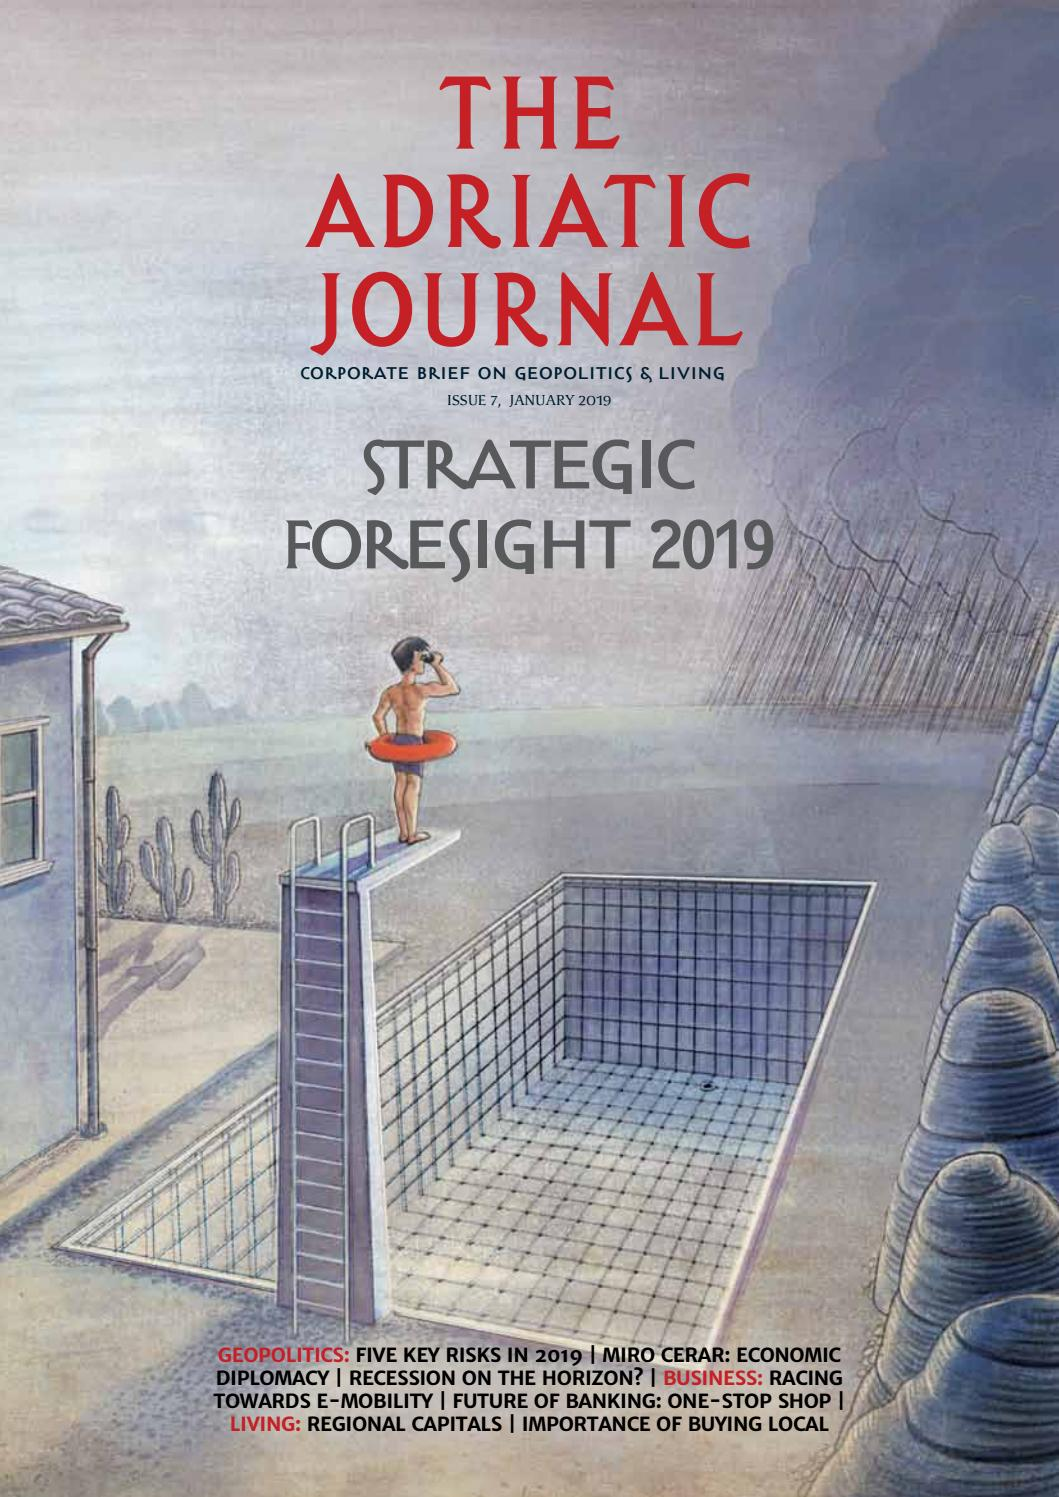 Adriatic Journal - Strategic Foresight 2019 by Bebic - issuu